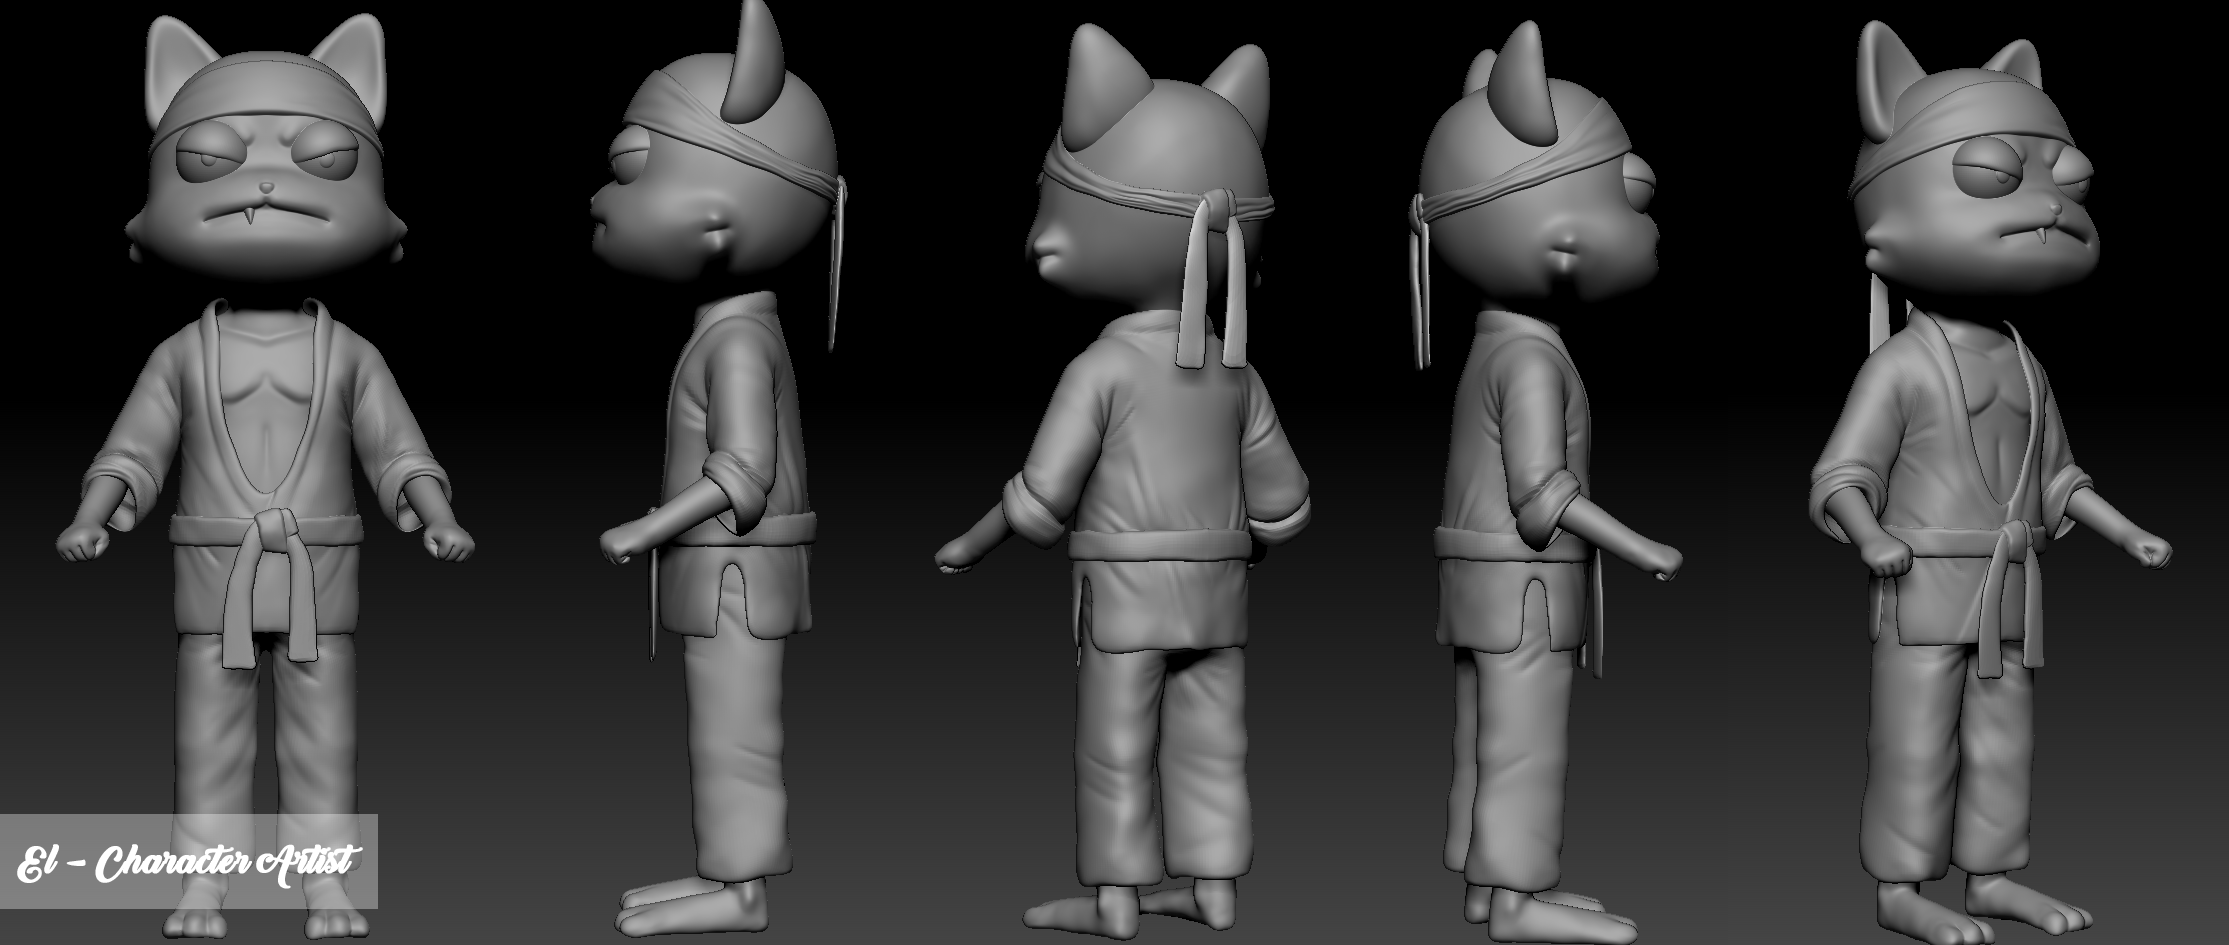 Super Kitty Cat 3D Model